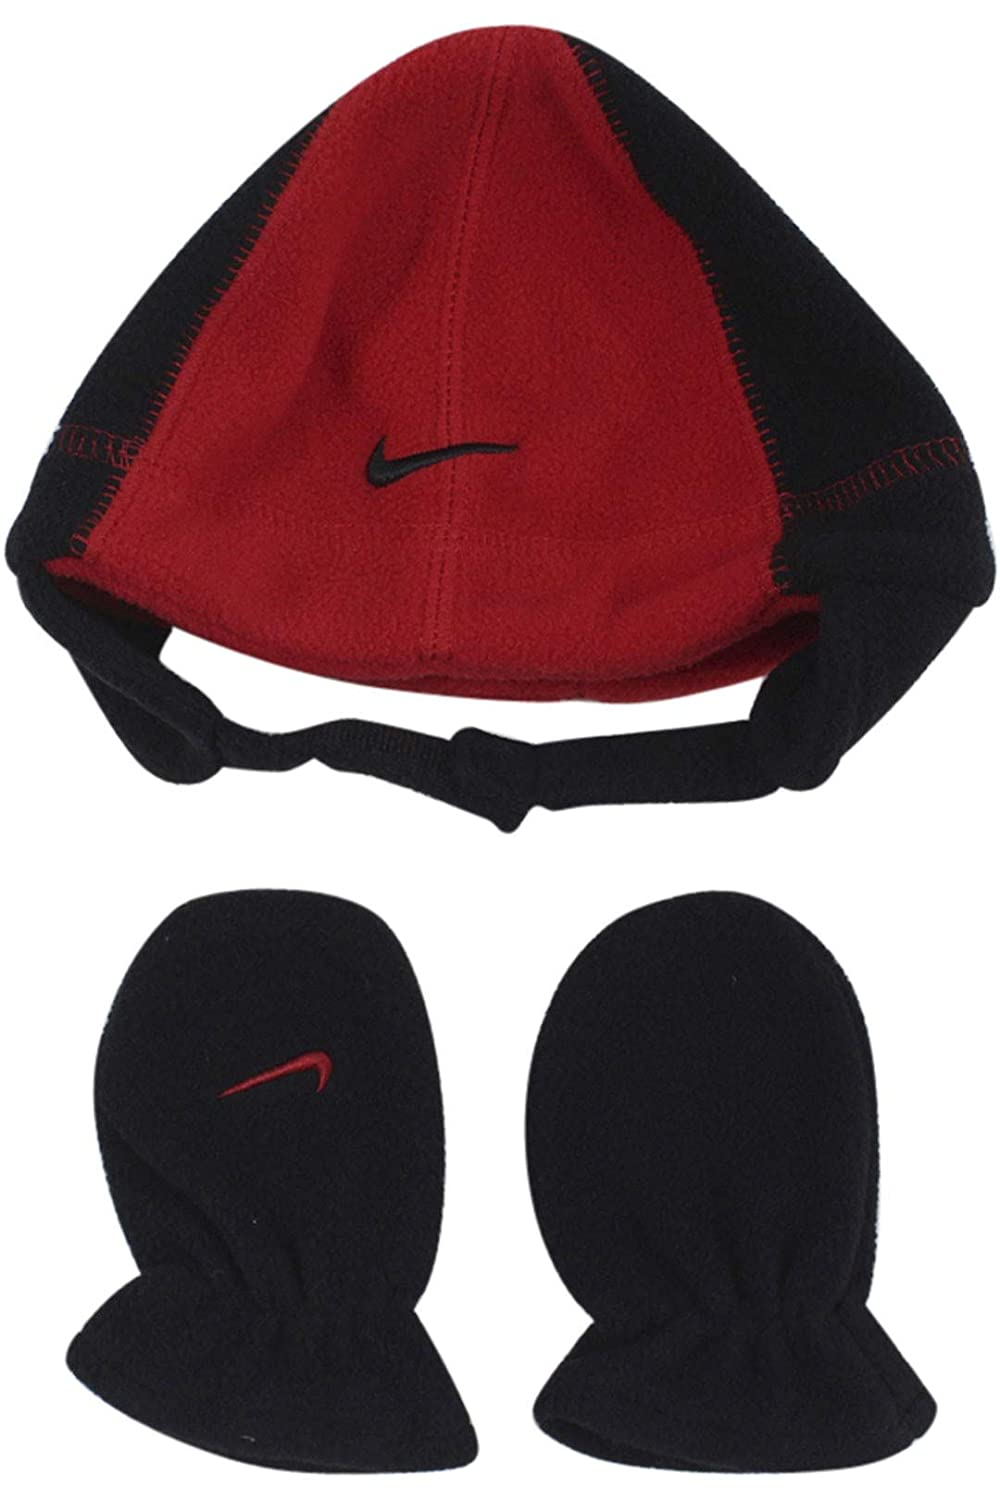 42452792fca Amazon.com  Nike Infant Baby 2 Piece Fleece Hat and Mittens Set  Cold  Weather Accessory Sets  Sports   Outdoors